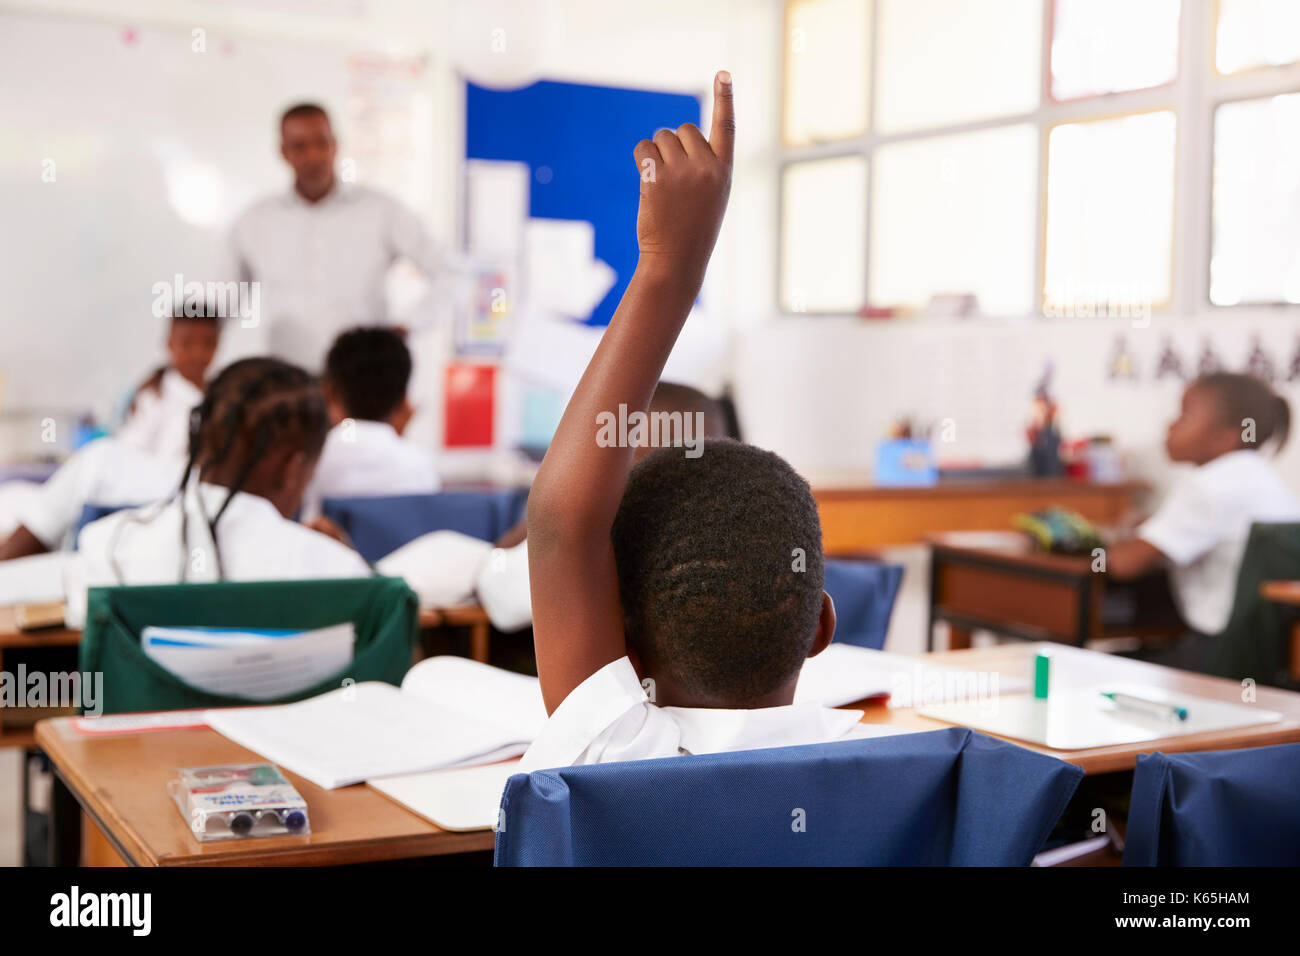 Child raising hand to answer in an elementary school lesson - Stock Image